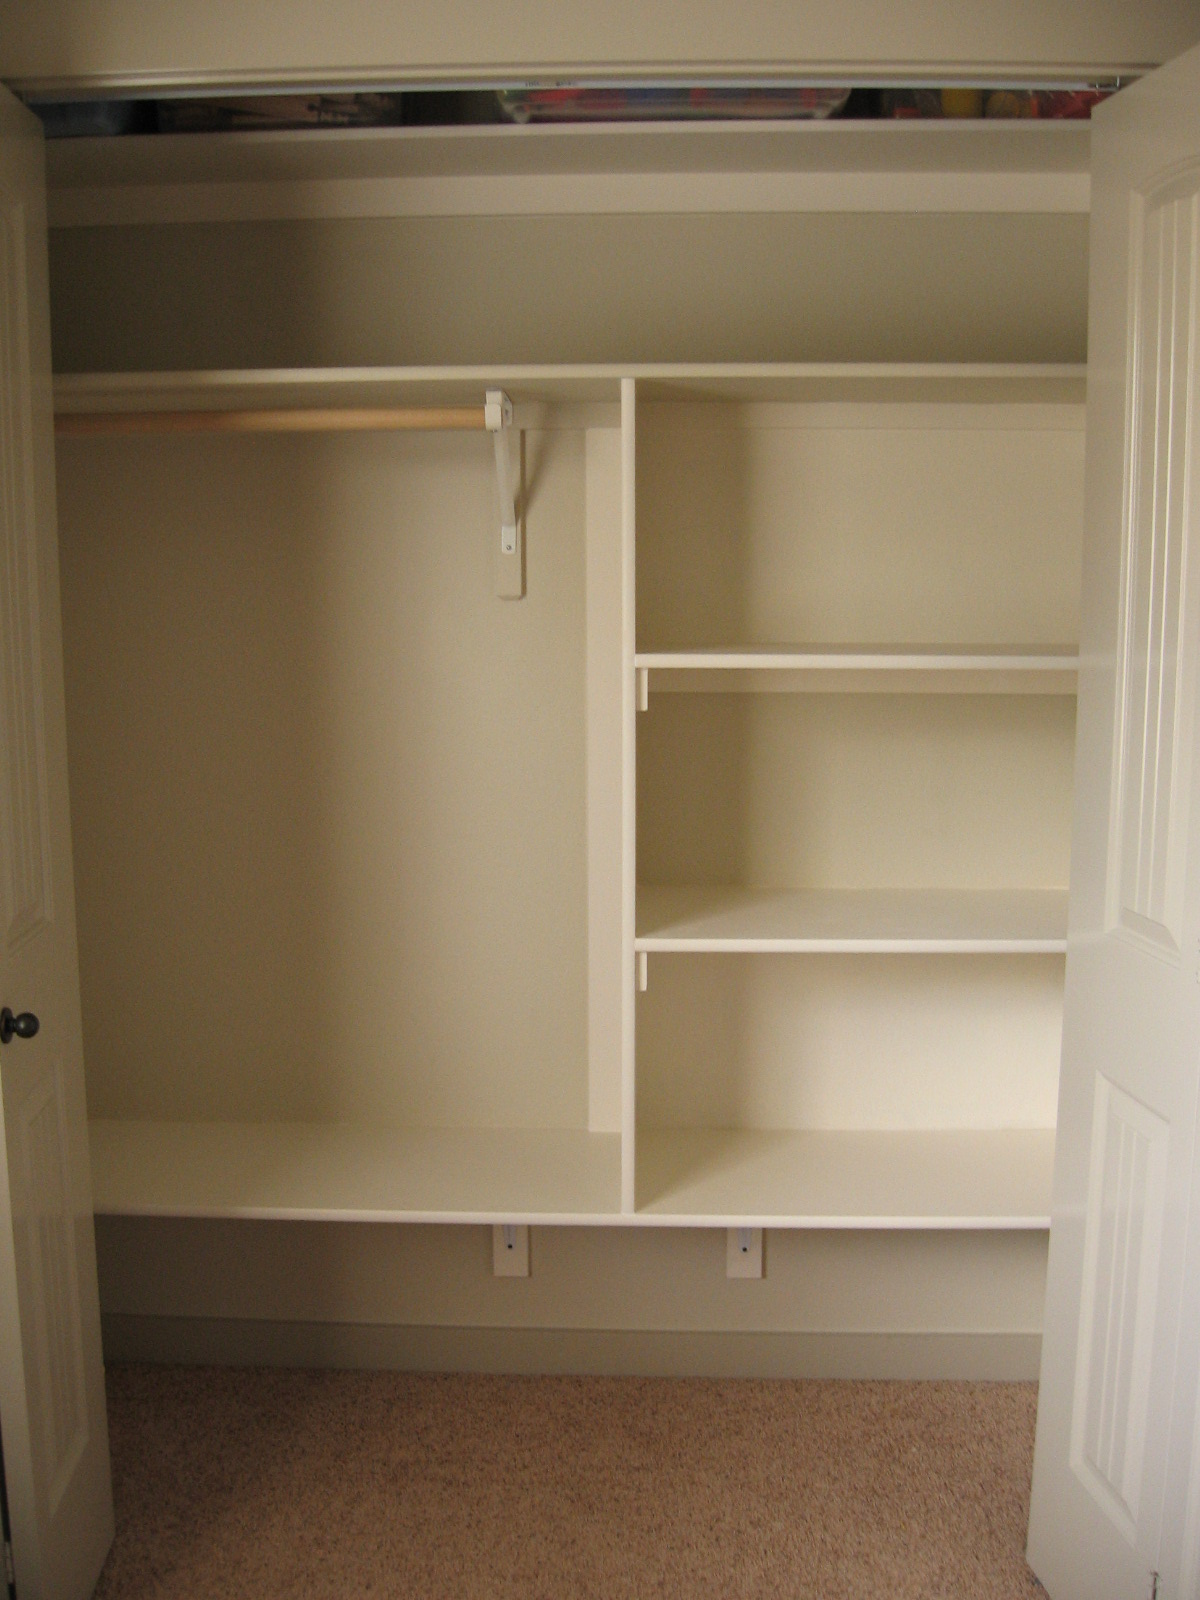 Closet Shelves Pickup Some Creativity The Trouble With Closets